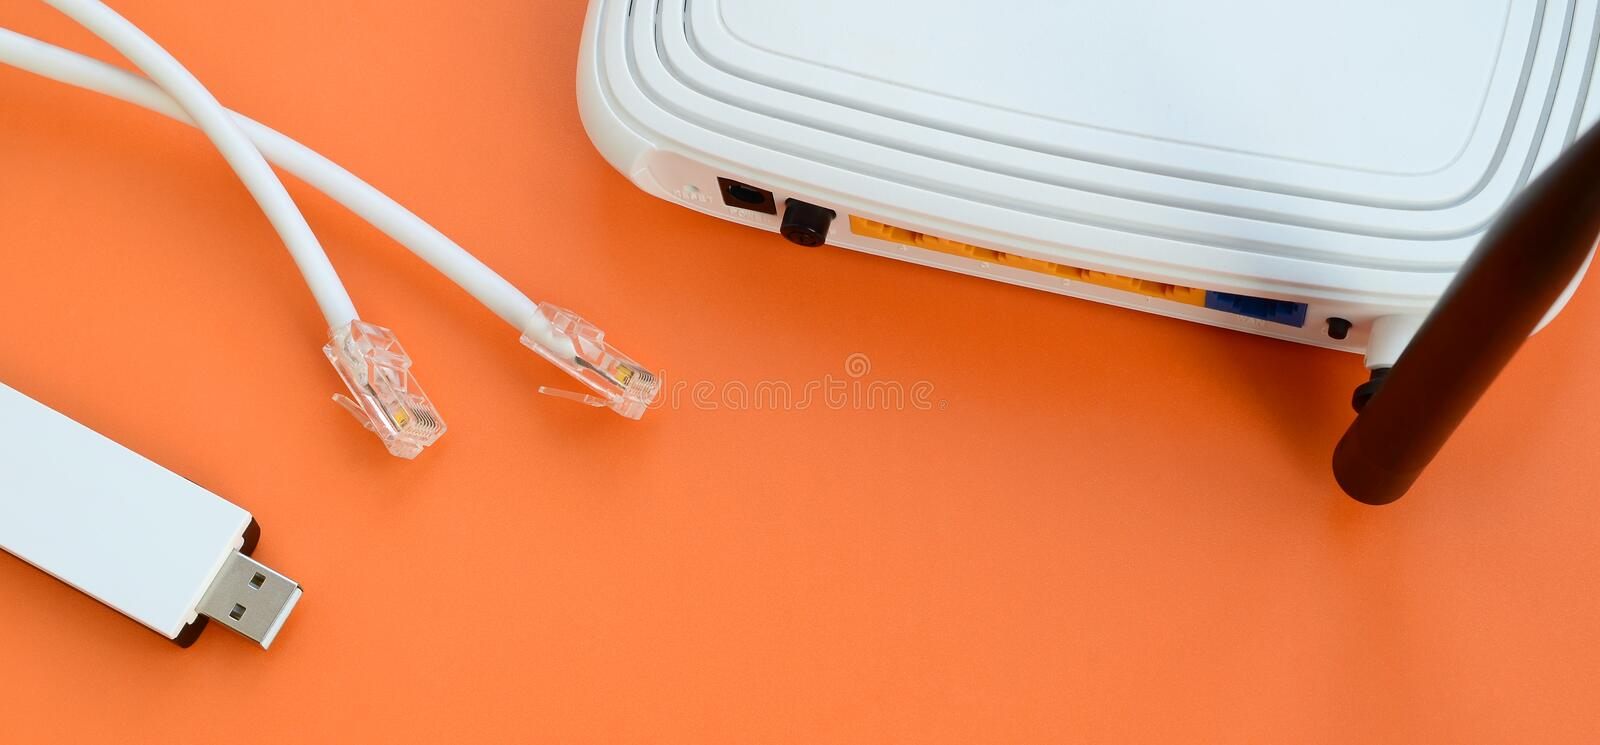 Internet router, portable USB wi-fi adapter and internet cable p royalty free stock images